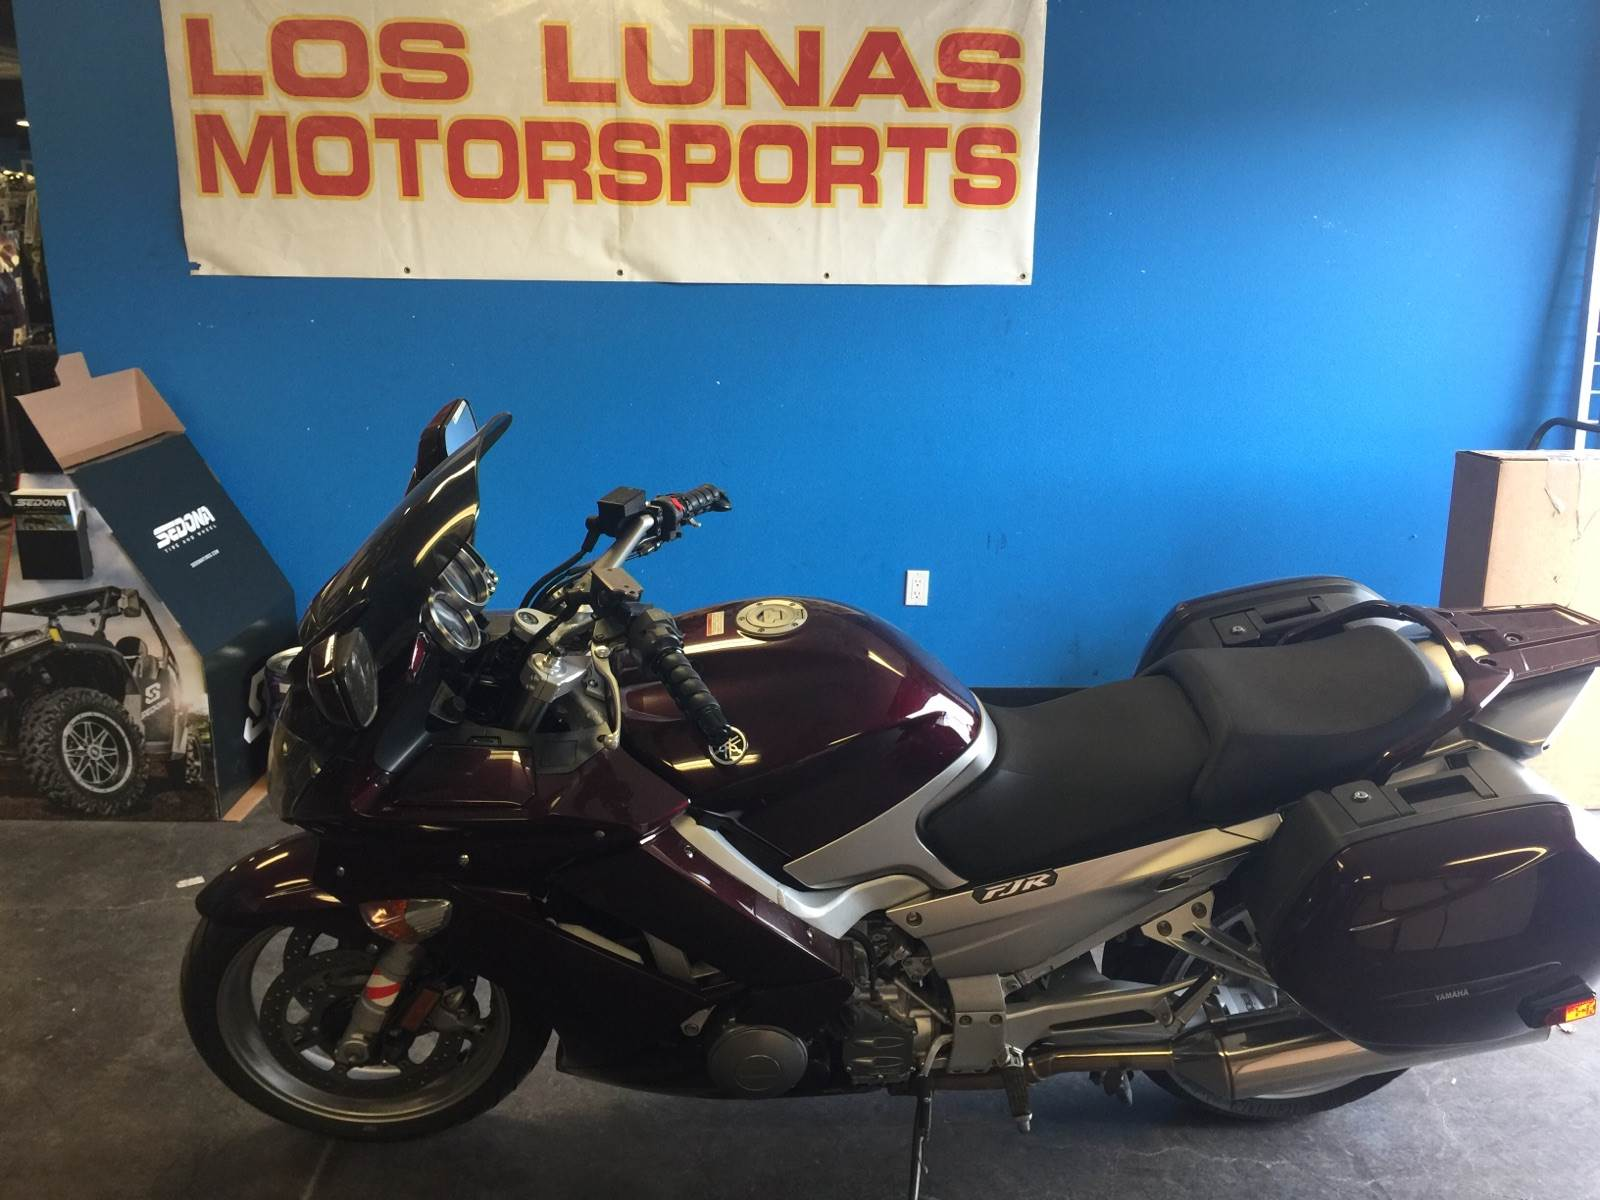 2007 Yamaha FJR 1300A in Las Cruces, New Mexico